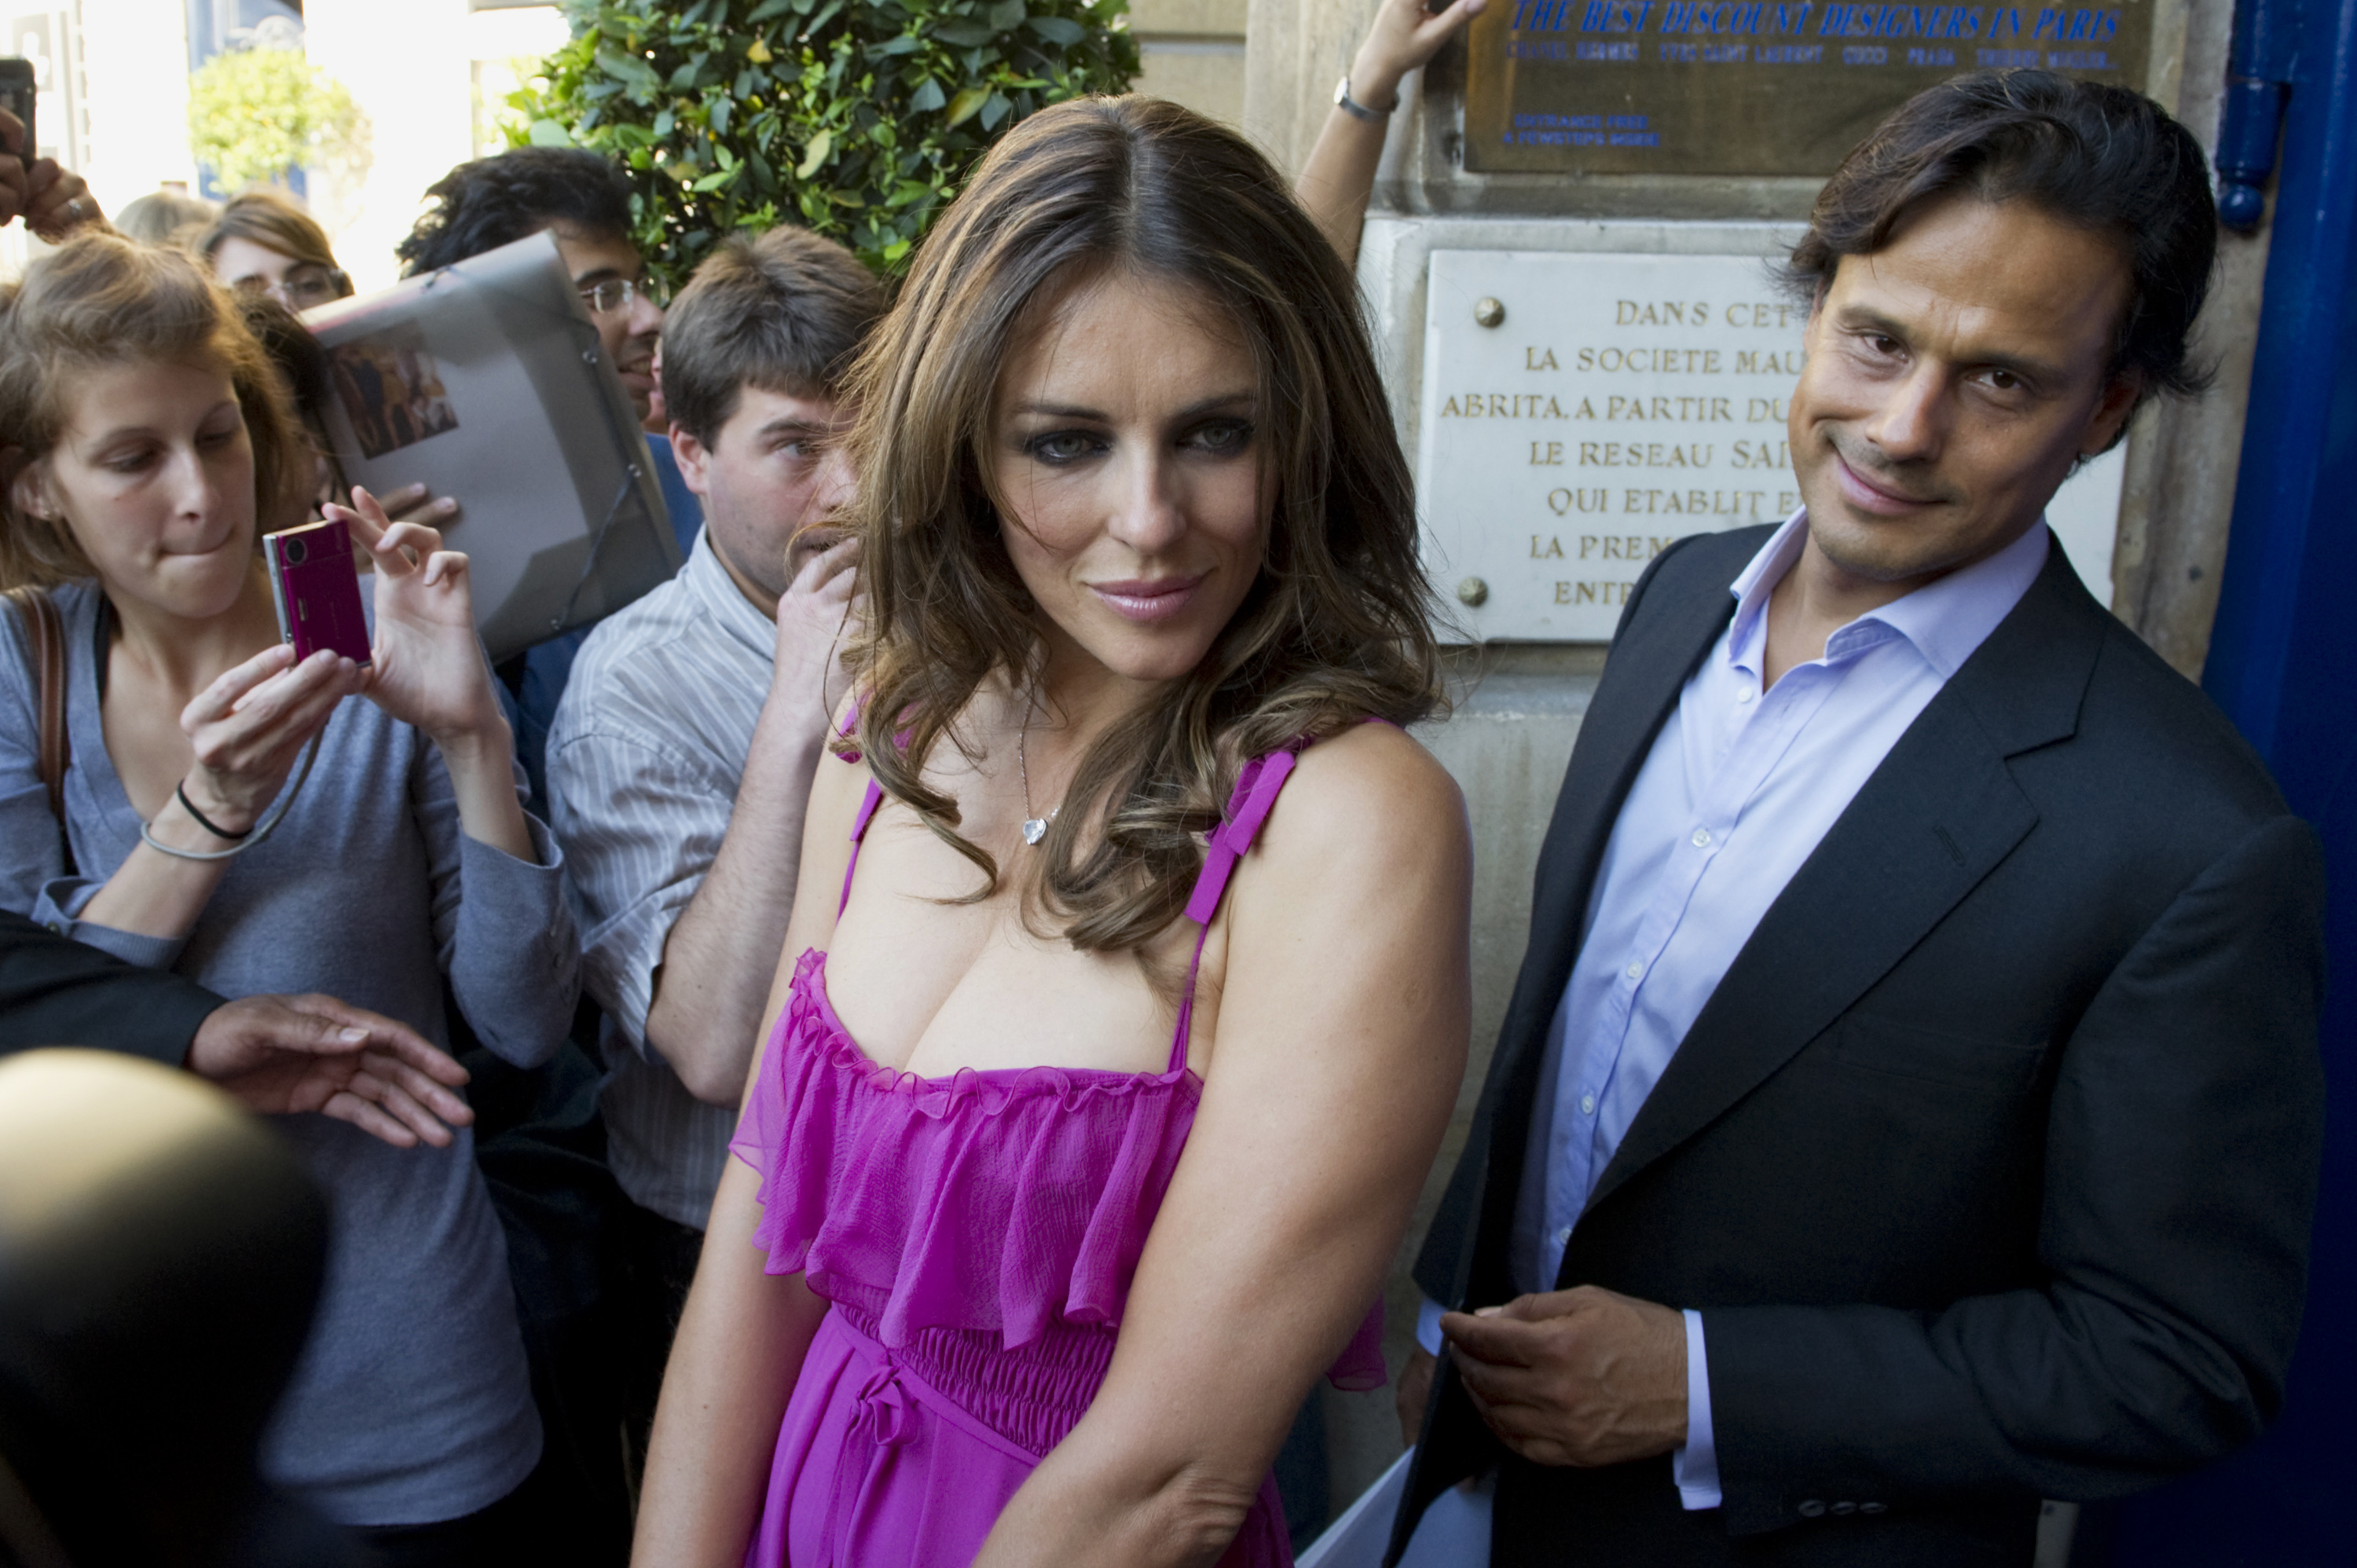 British model Elizabeth Hurley (L) and her husband, Indian businessman Arun Nayar leave after the Valentino fashion house Fall/Winter 2010-2011 Haute Couture show in Paris July 7, 2010. REUTERS/Gonzalo Fuentes (FRANCE - Tags: FASHION)